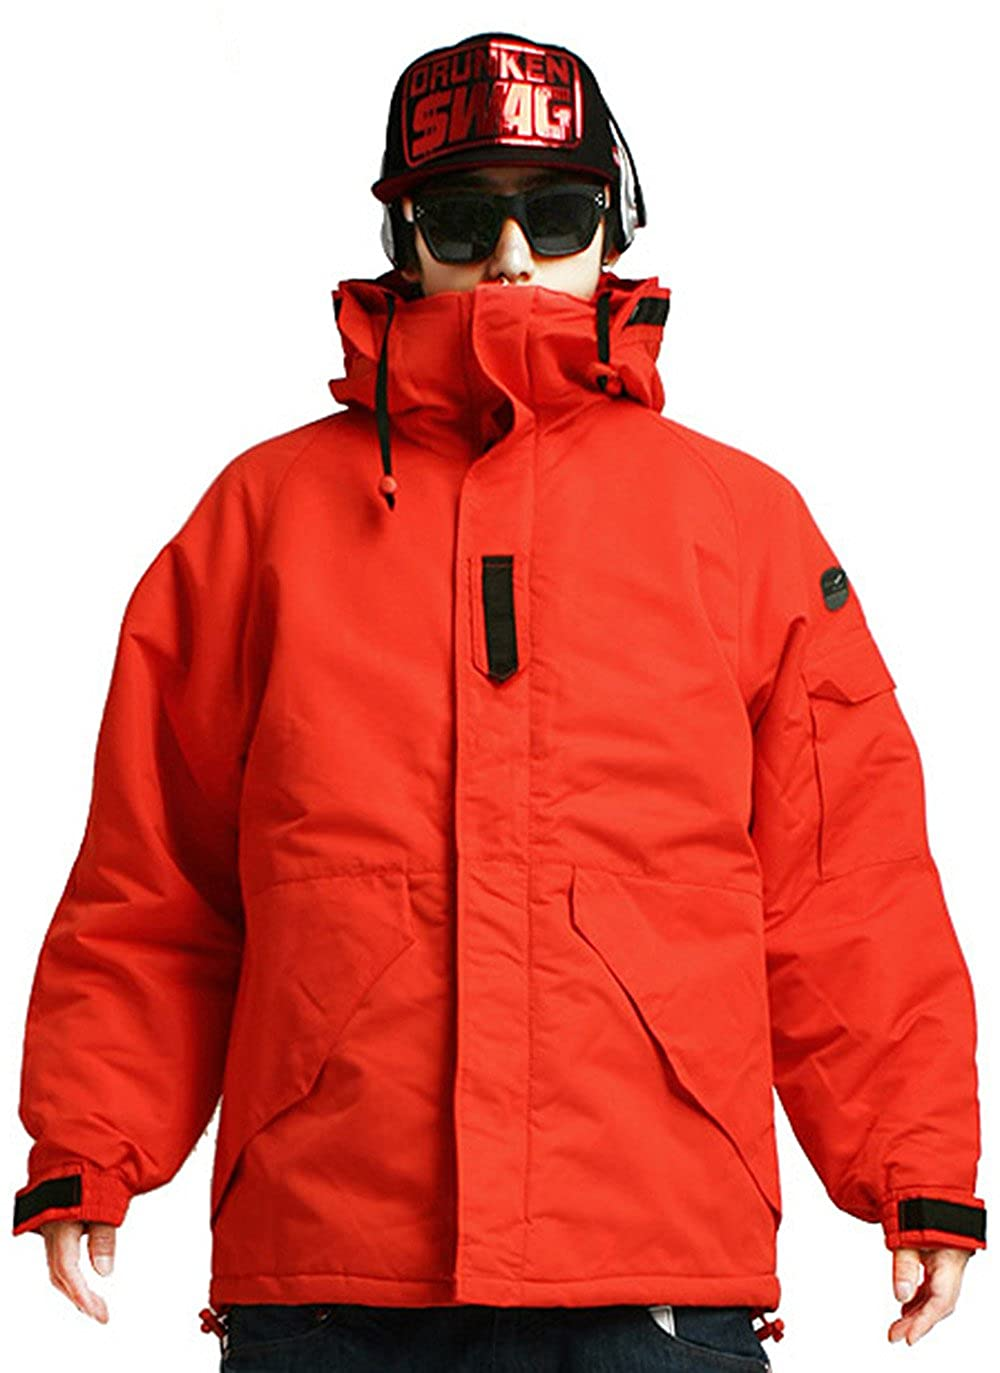 South Play Mens Waterproof Ski Snowboard Wear Jacket Jumper Solid Orange